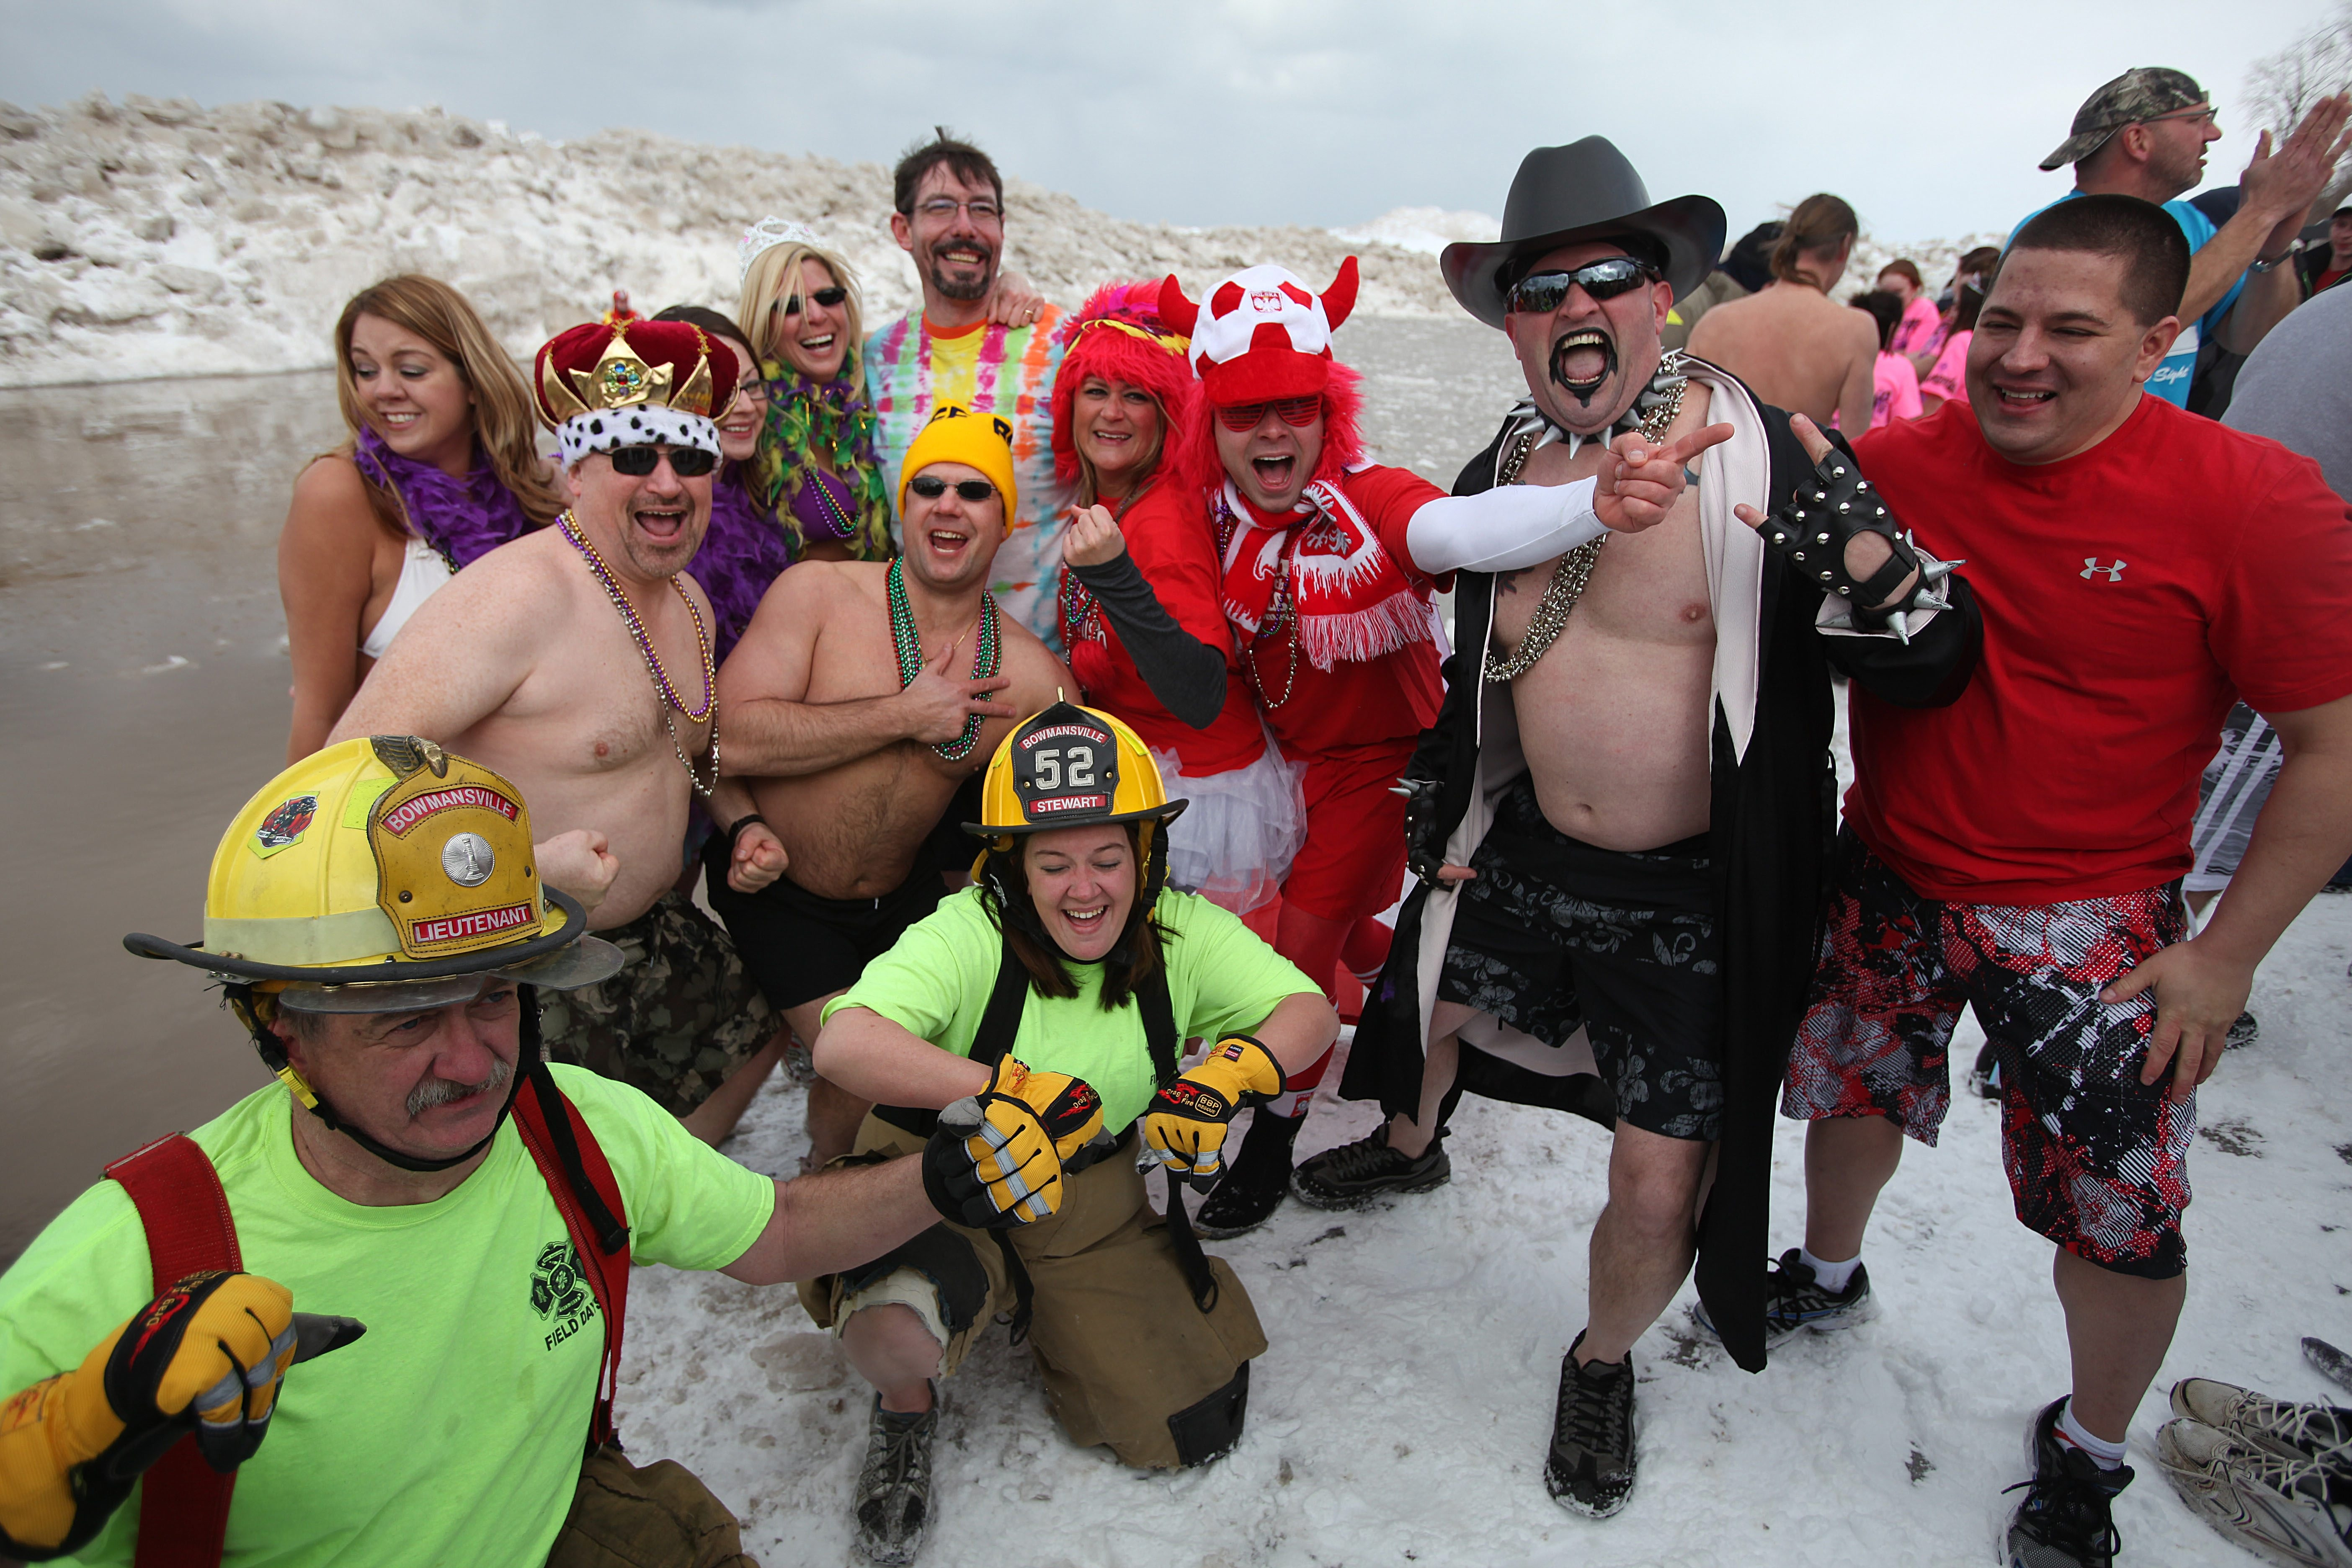 Clockwise from top: participants in zany costumes pose by the water at Olcott Beach during the 45th Polar Bear Swim for Sight, Sunday. Mindy Kramp, of Newfane, is all smiles as she gets wet next to a water rescue volunteer. Friends Kim Gordon, left, of Clarence, and Christy Zell, of Bennington, hug in the freezing Lake Ontario water.